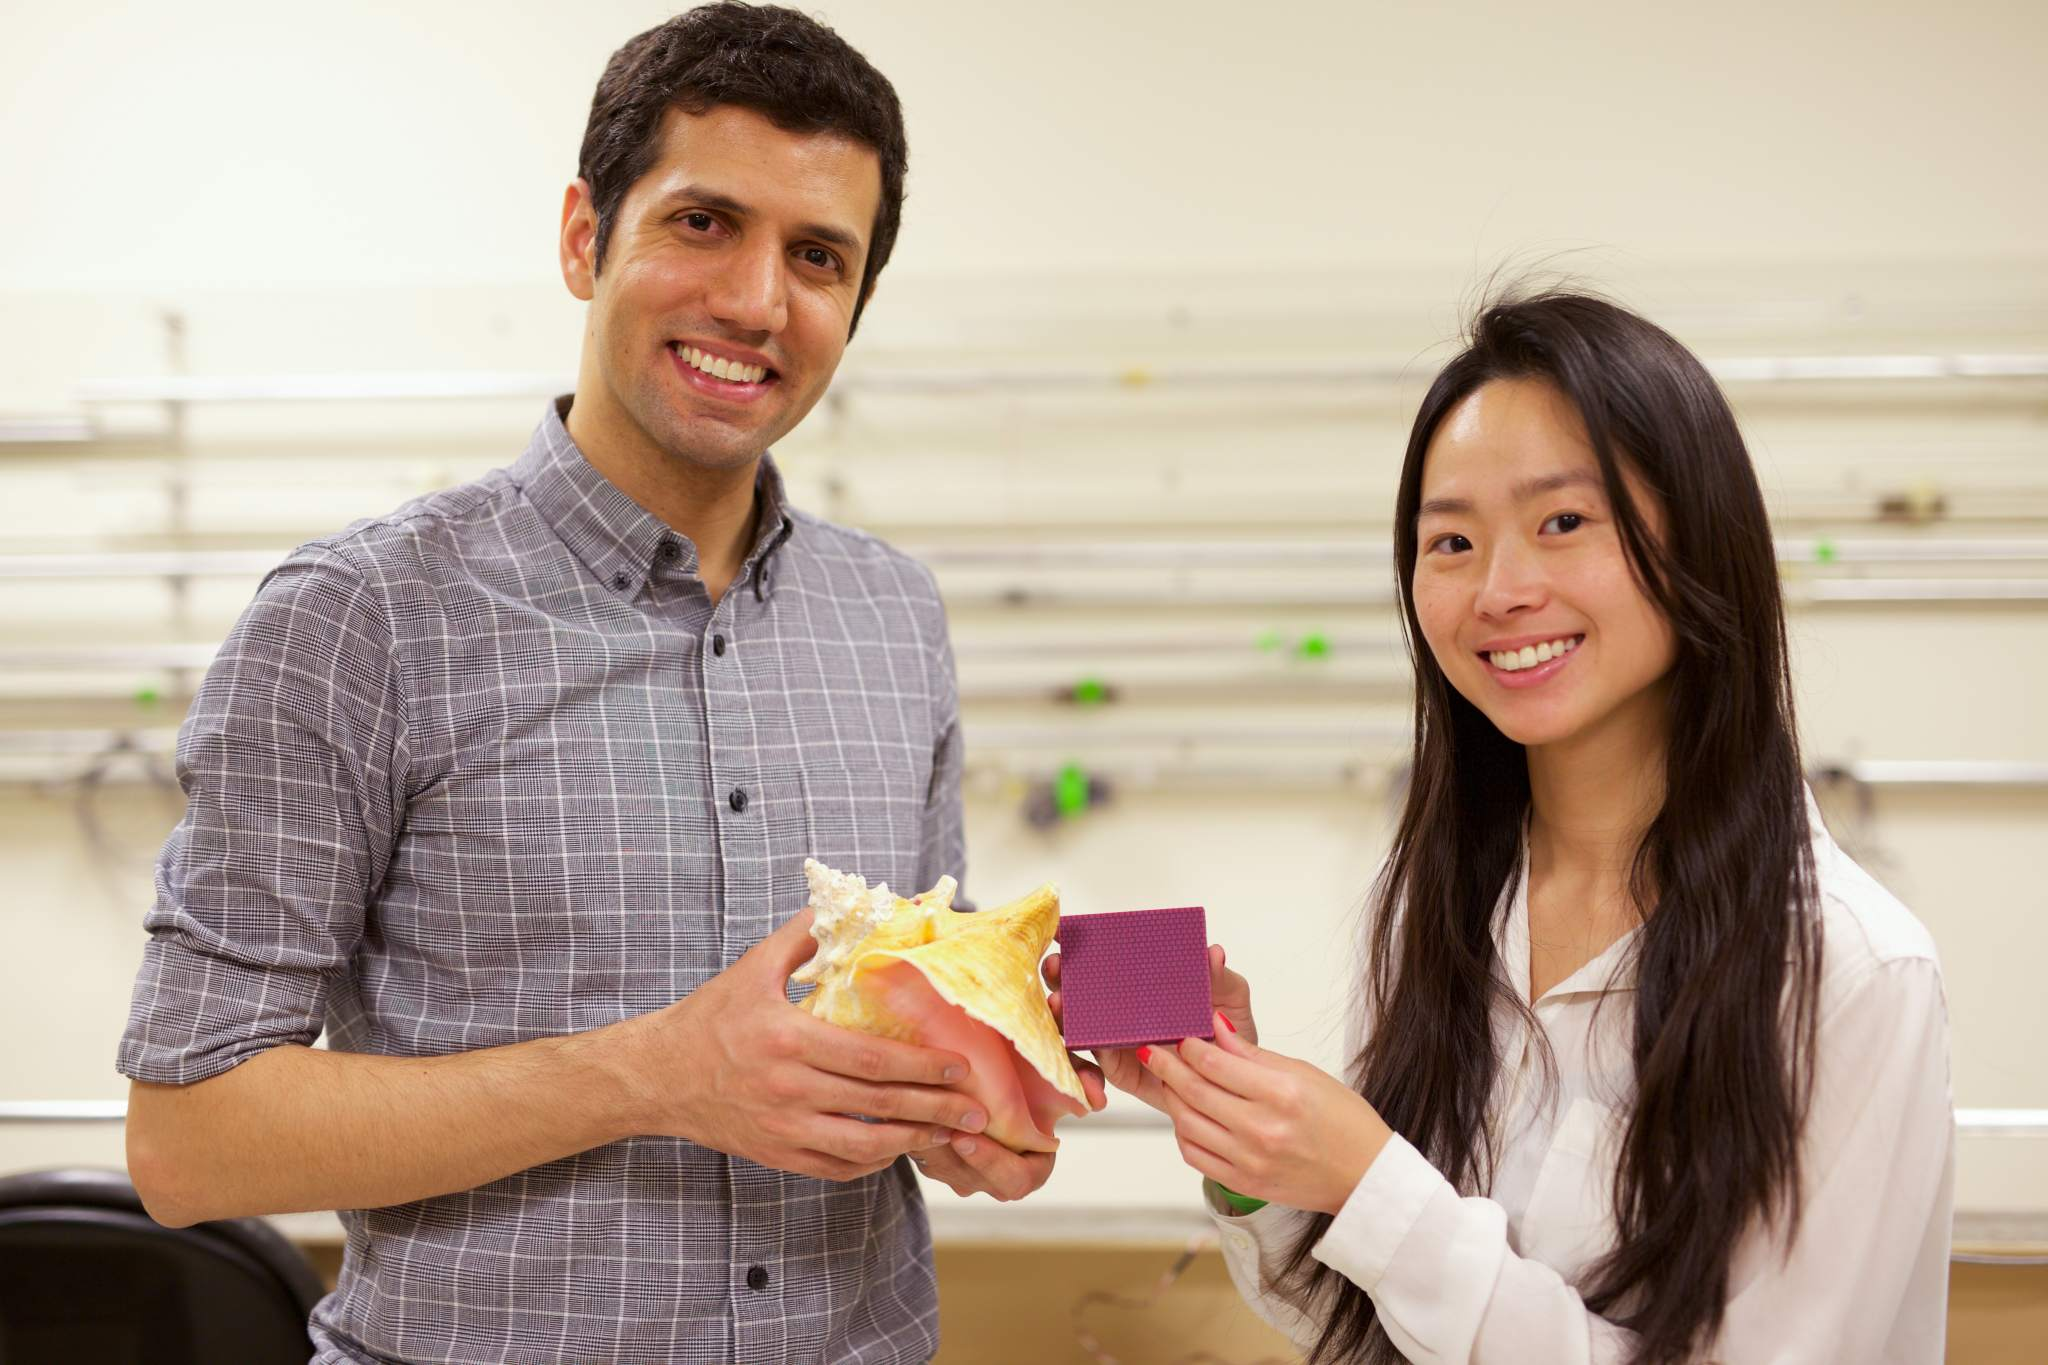 MIT postdoc student Mahdi Takaffoli (left) and graduate student Grace Gu (right) with a conch shell and the 3D printed equivalent. Photo via Melanie Gonick/MIT.